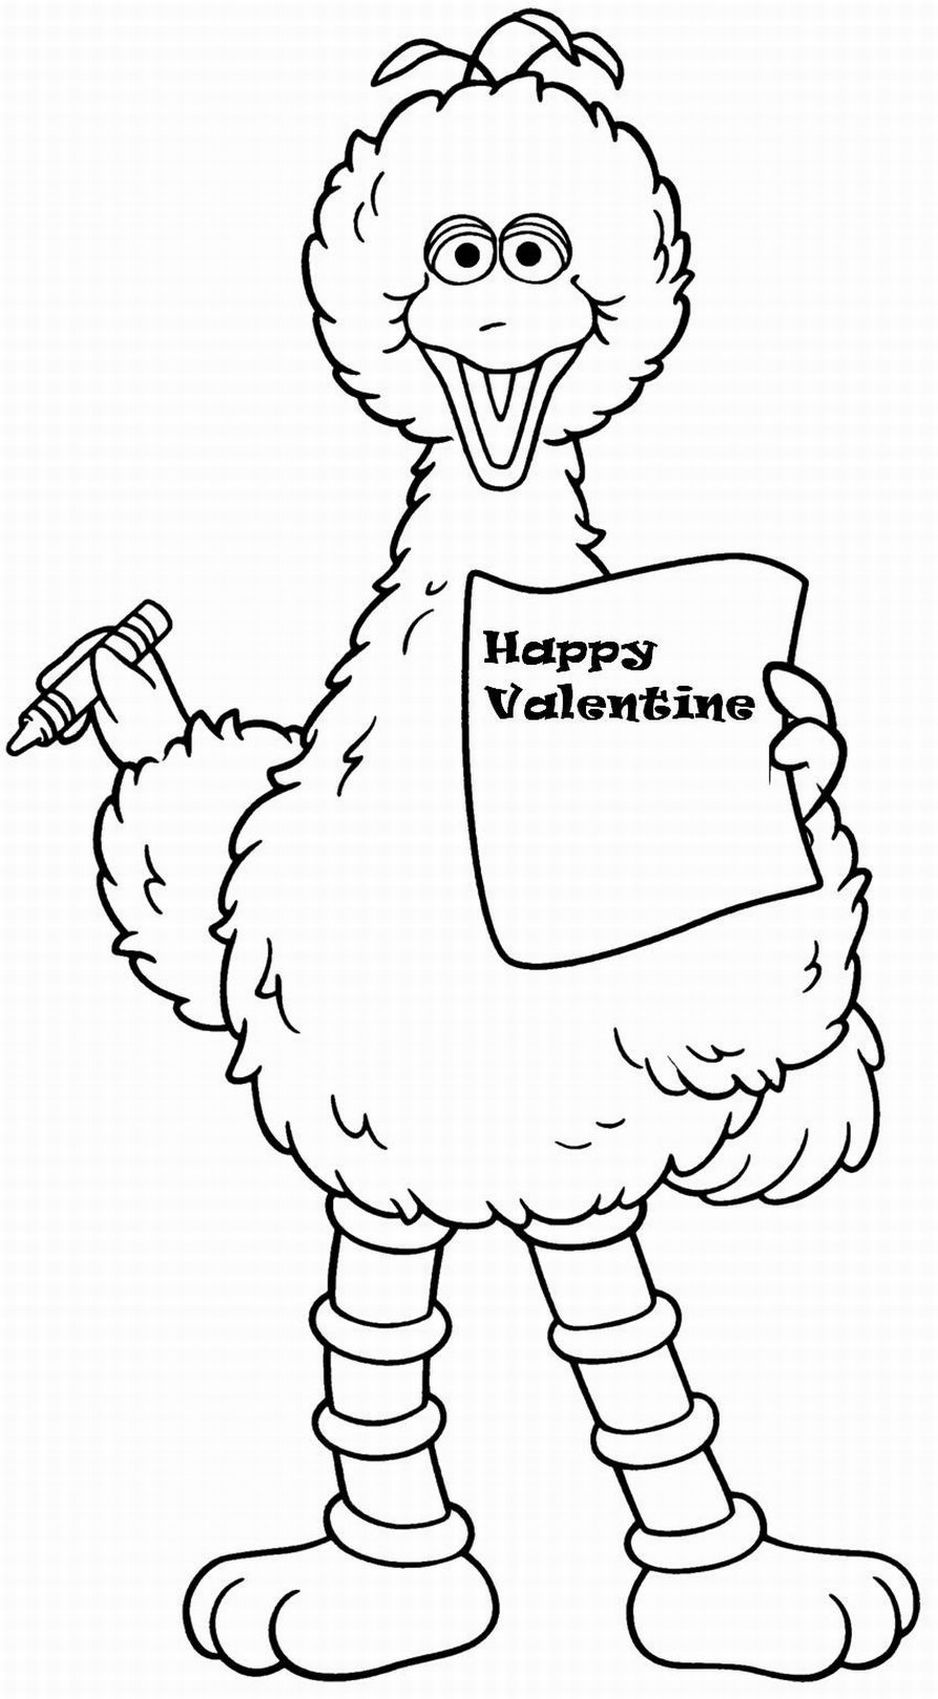 Sesame Street Coloring Pages Big Bird Valentine